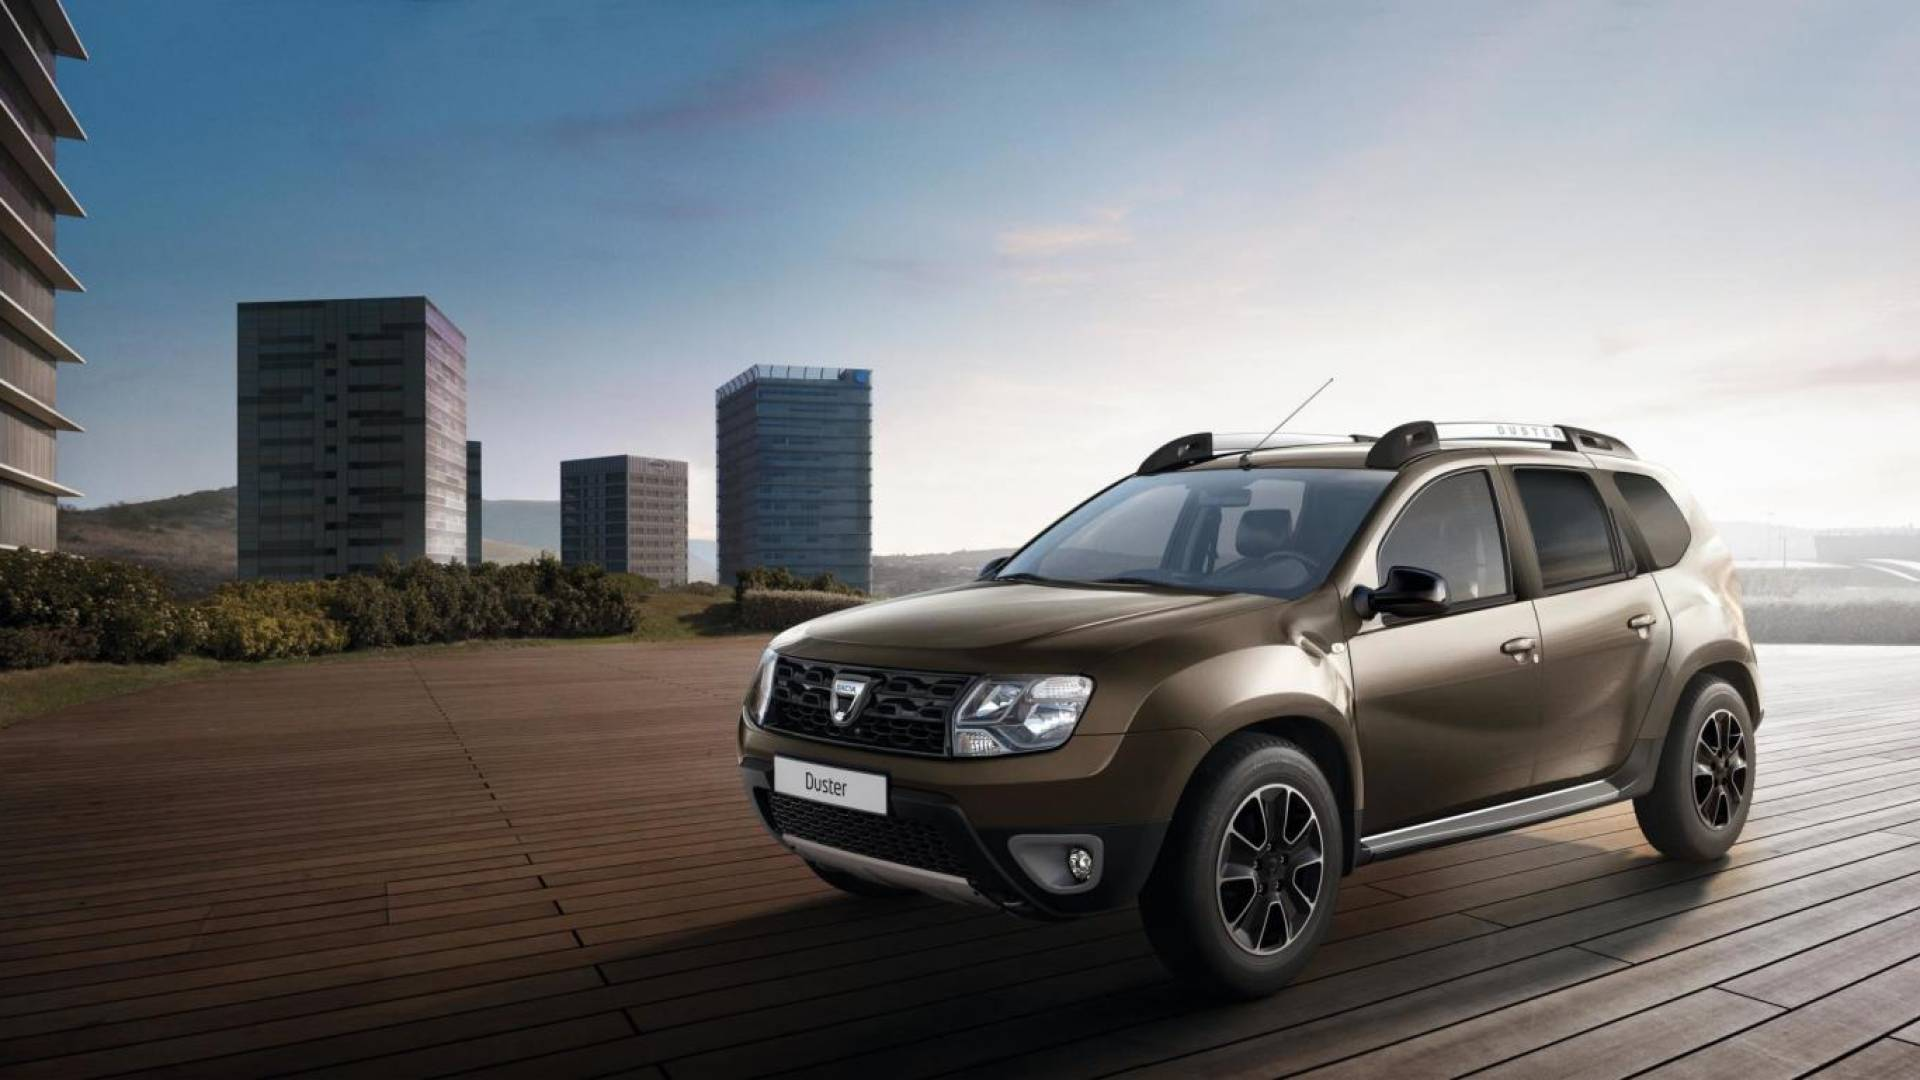 dacia duster precios prueba ficha t cnica y fotos. Black Bedroom Furniture Sets. Home Design Ideas